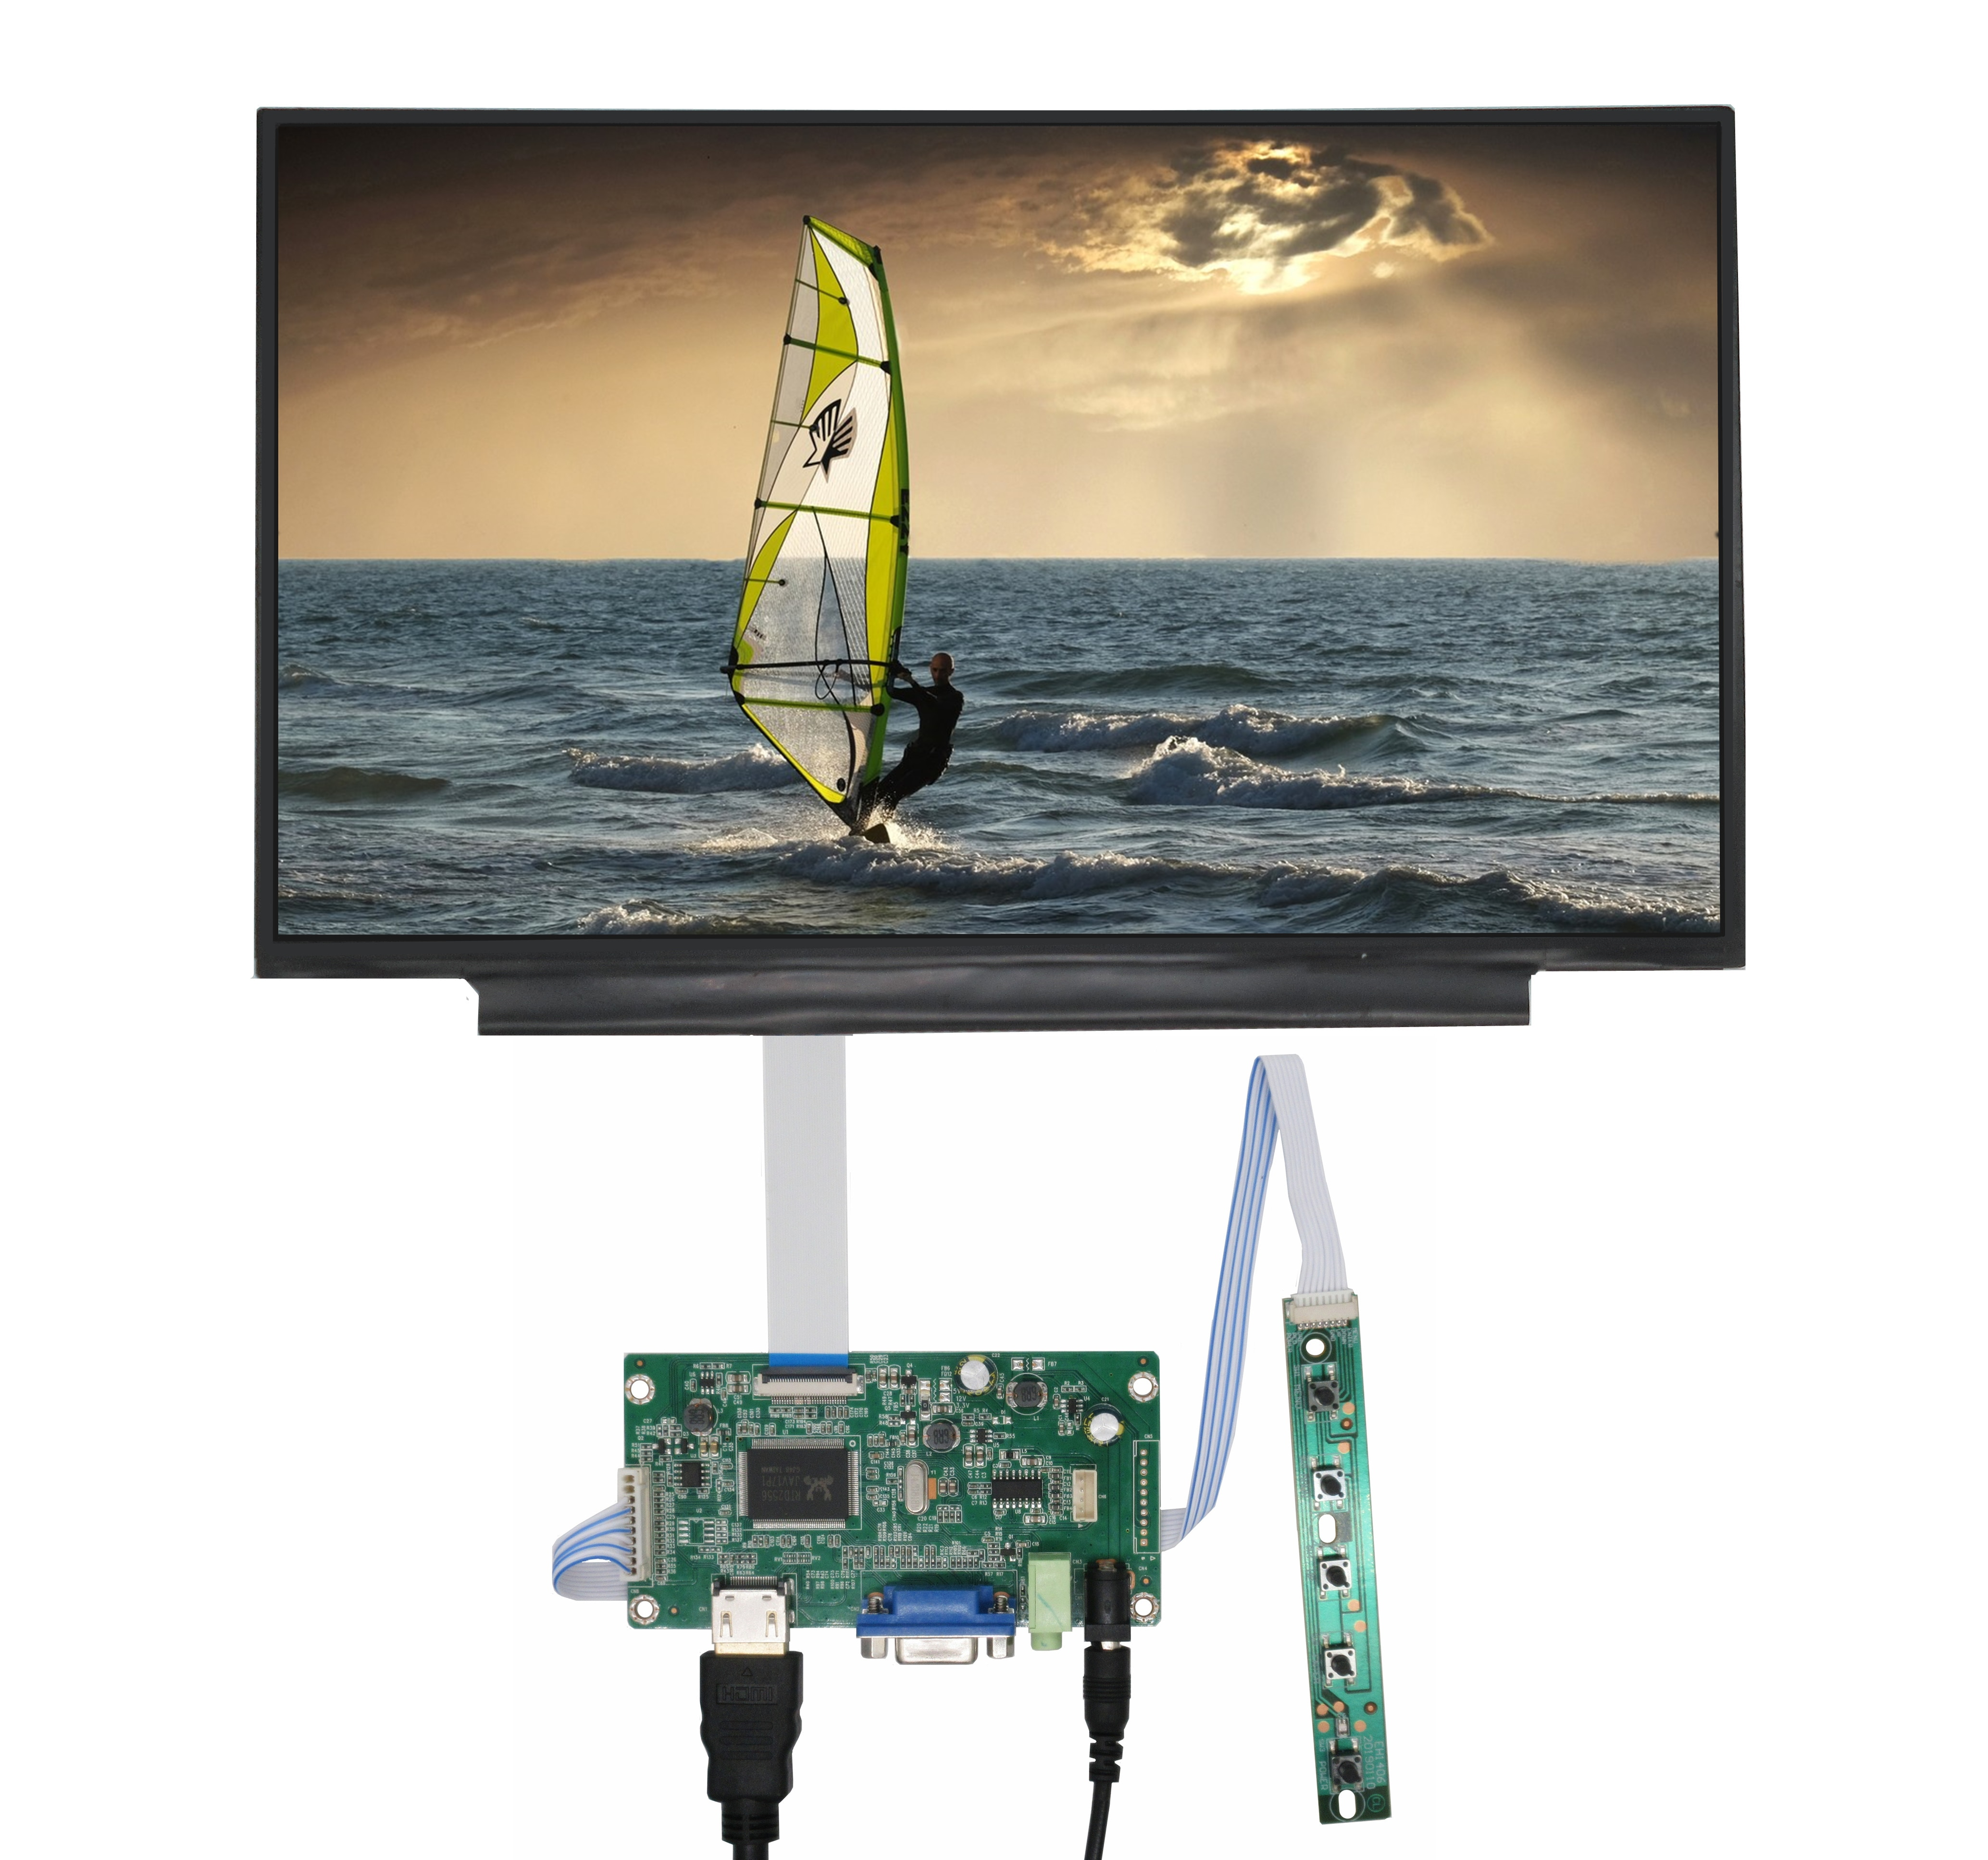 11.6Inches Screen Display Monitor With Driver Control Board Audio VGA HDMI-Compatible for Computer O